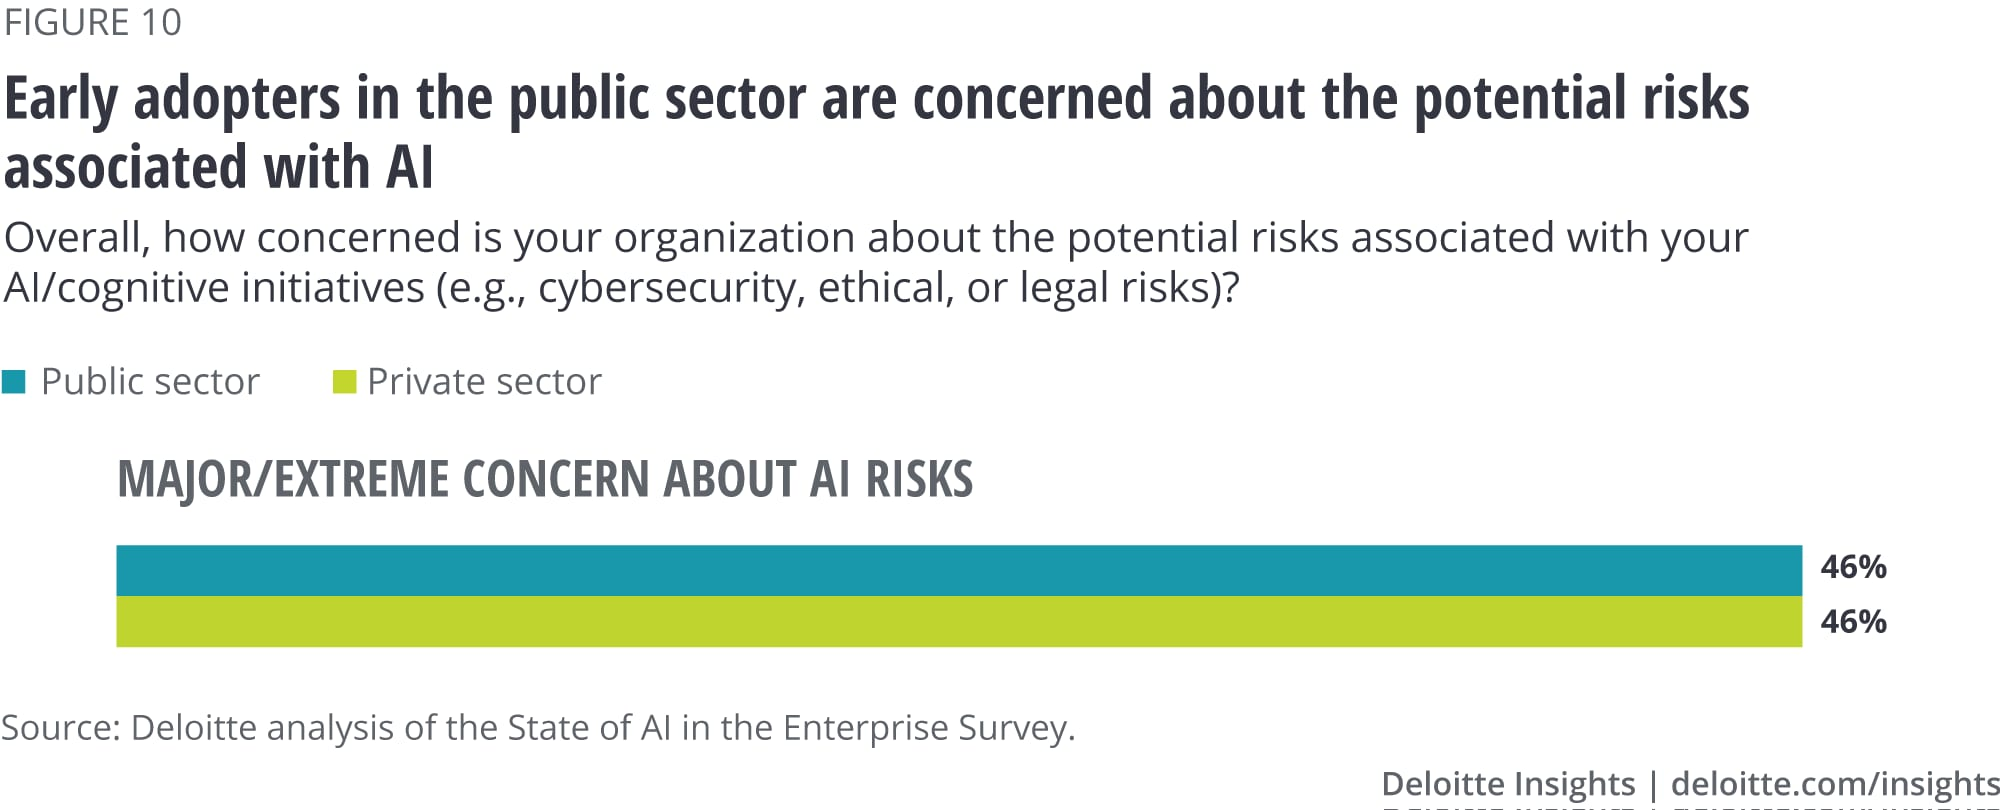 Early adopters in the public sector are concerned about the potential risks associated with AI